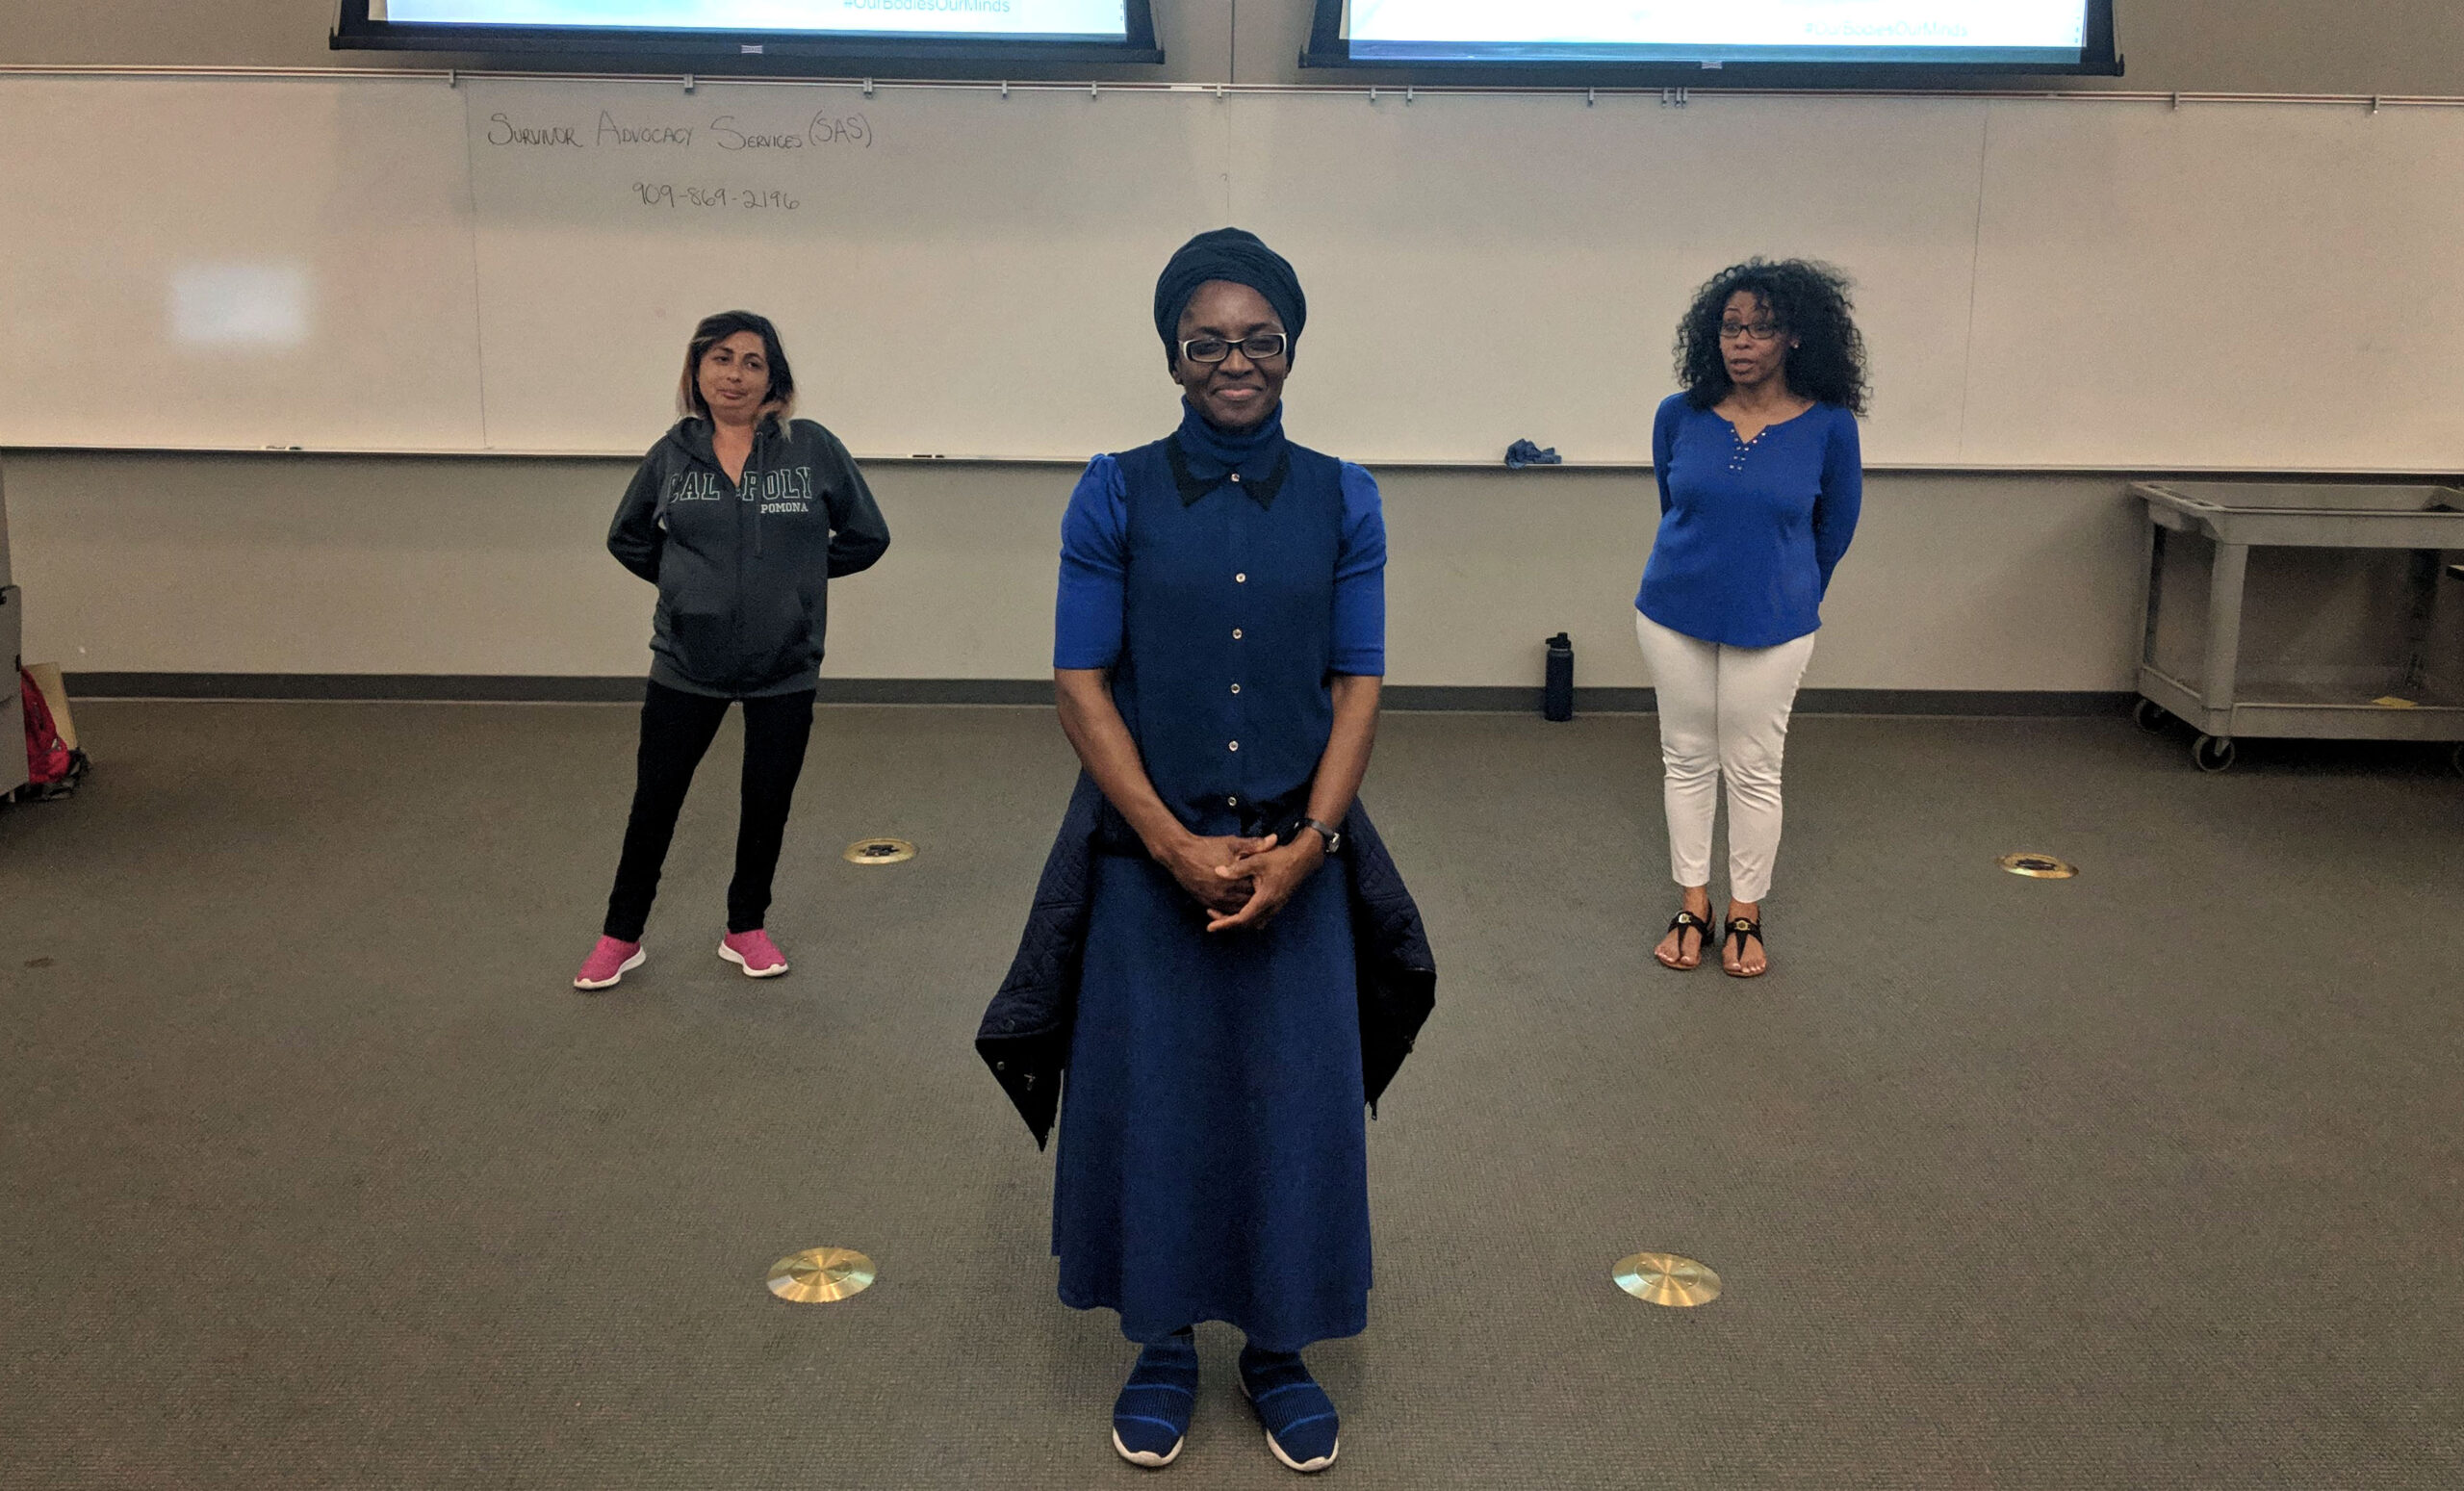 Our Bodies, Our Minds at Cal Poly Pomona